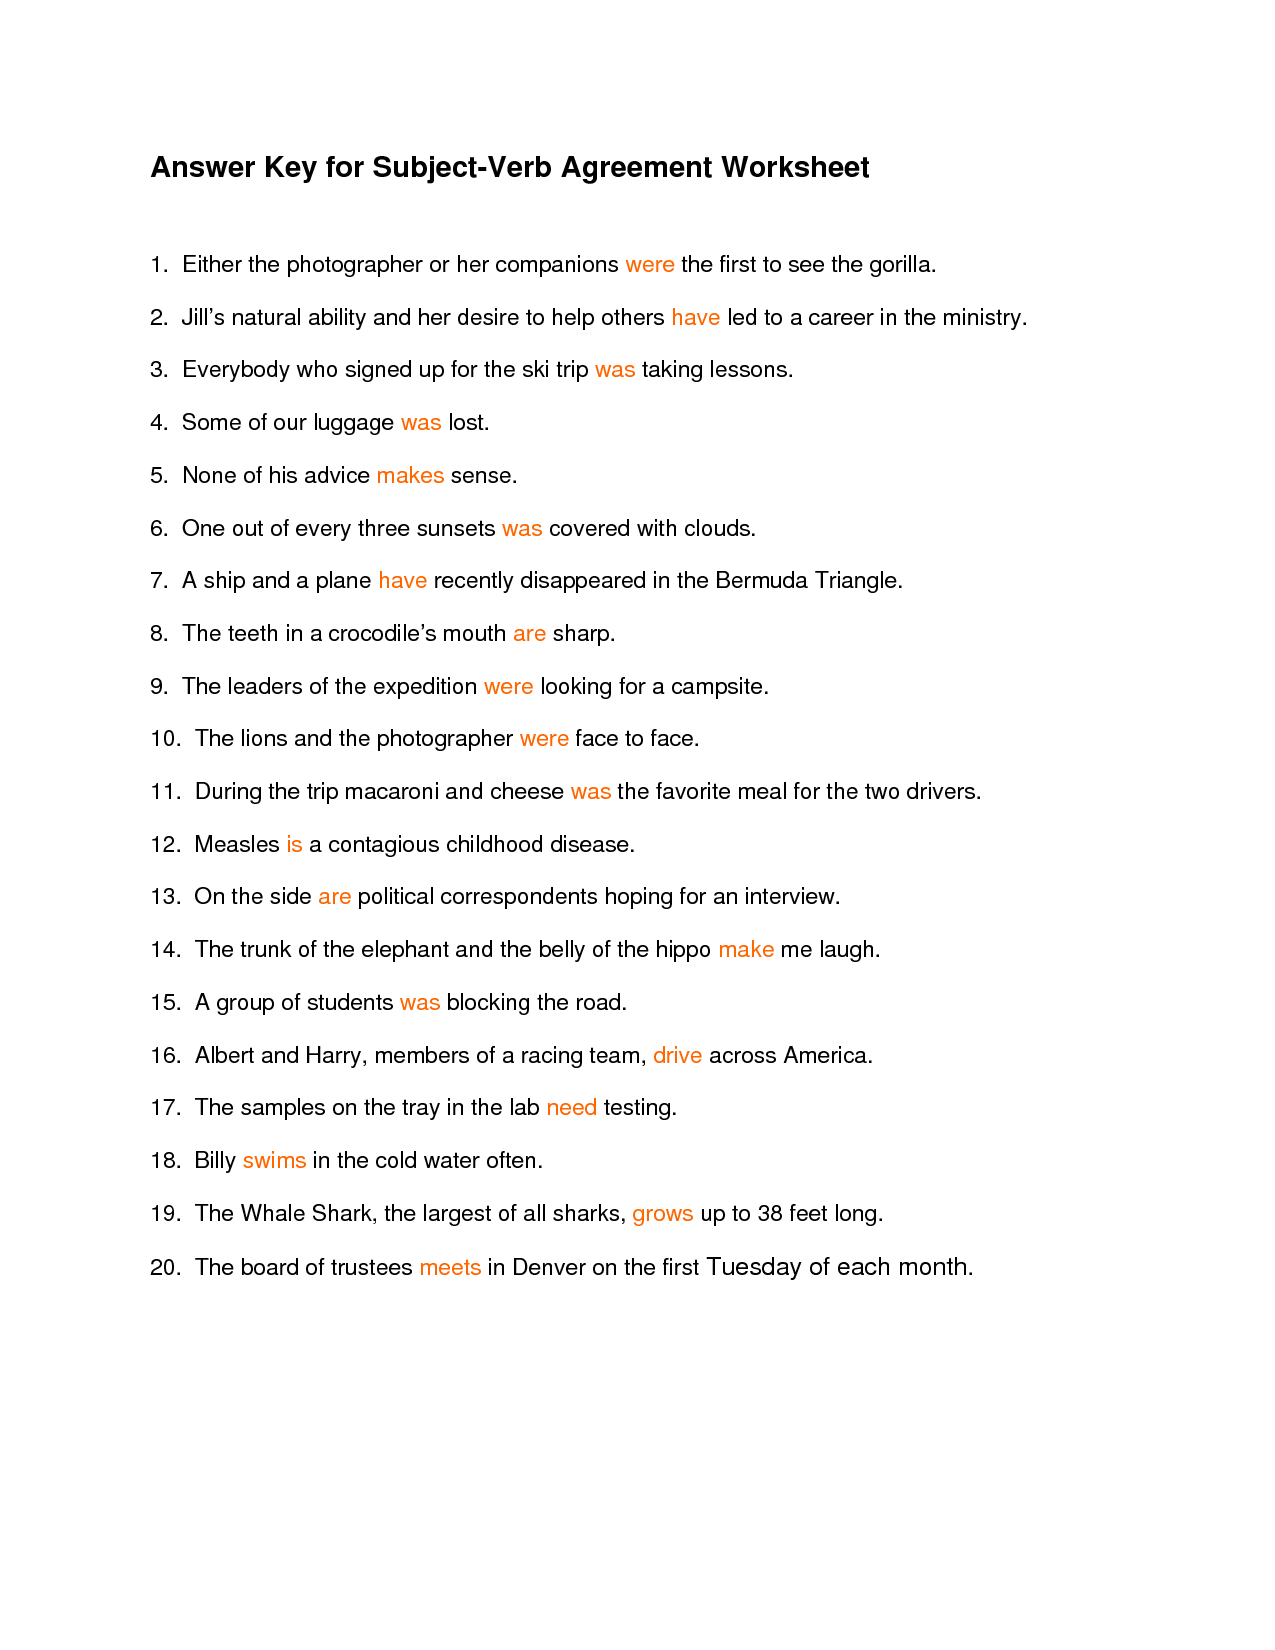 Worksheet Subject Verb Agreement Worksheets With Answers